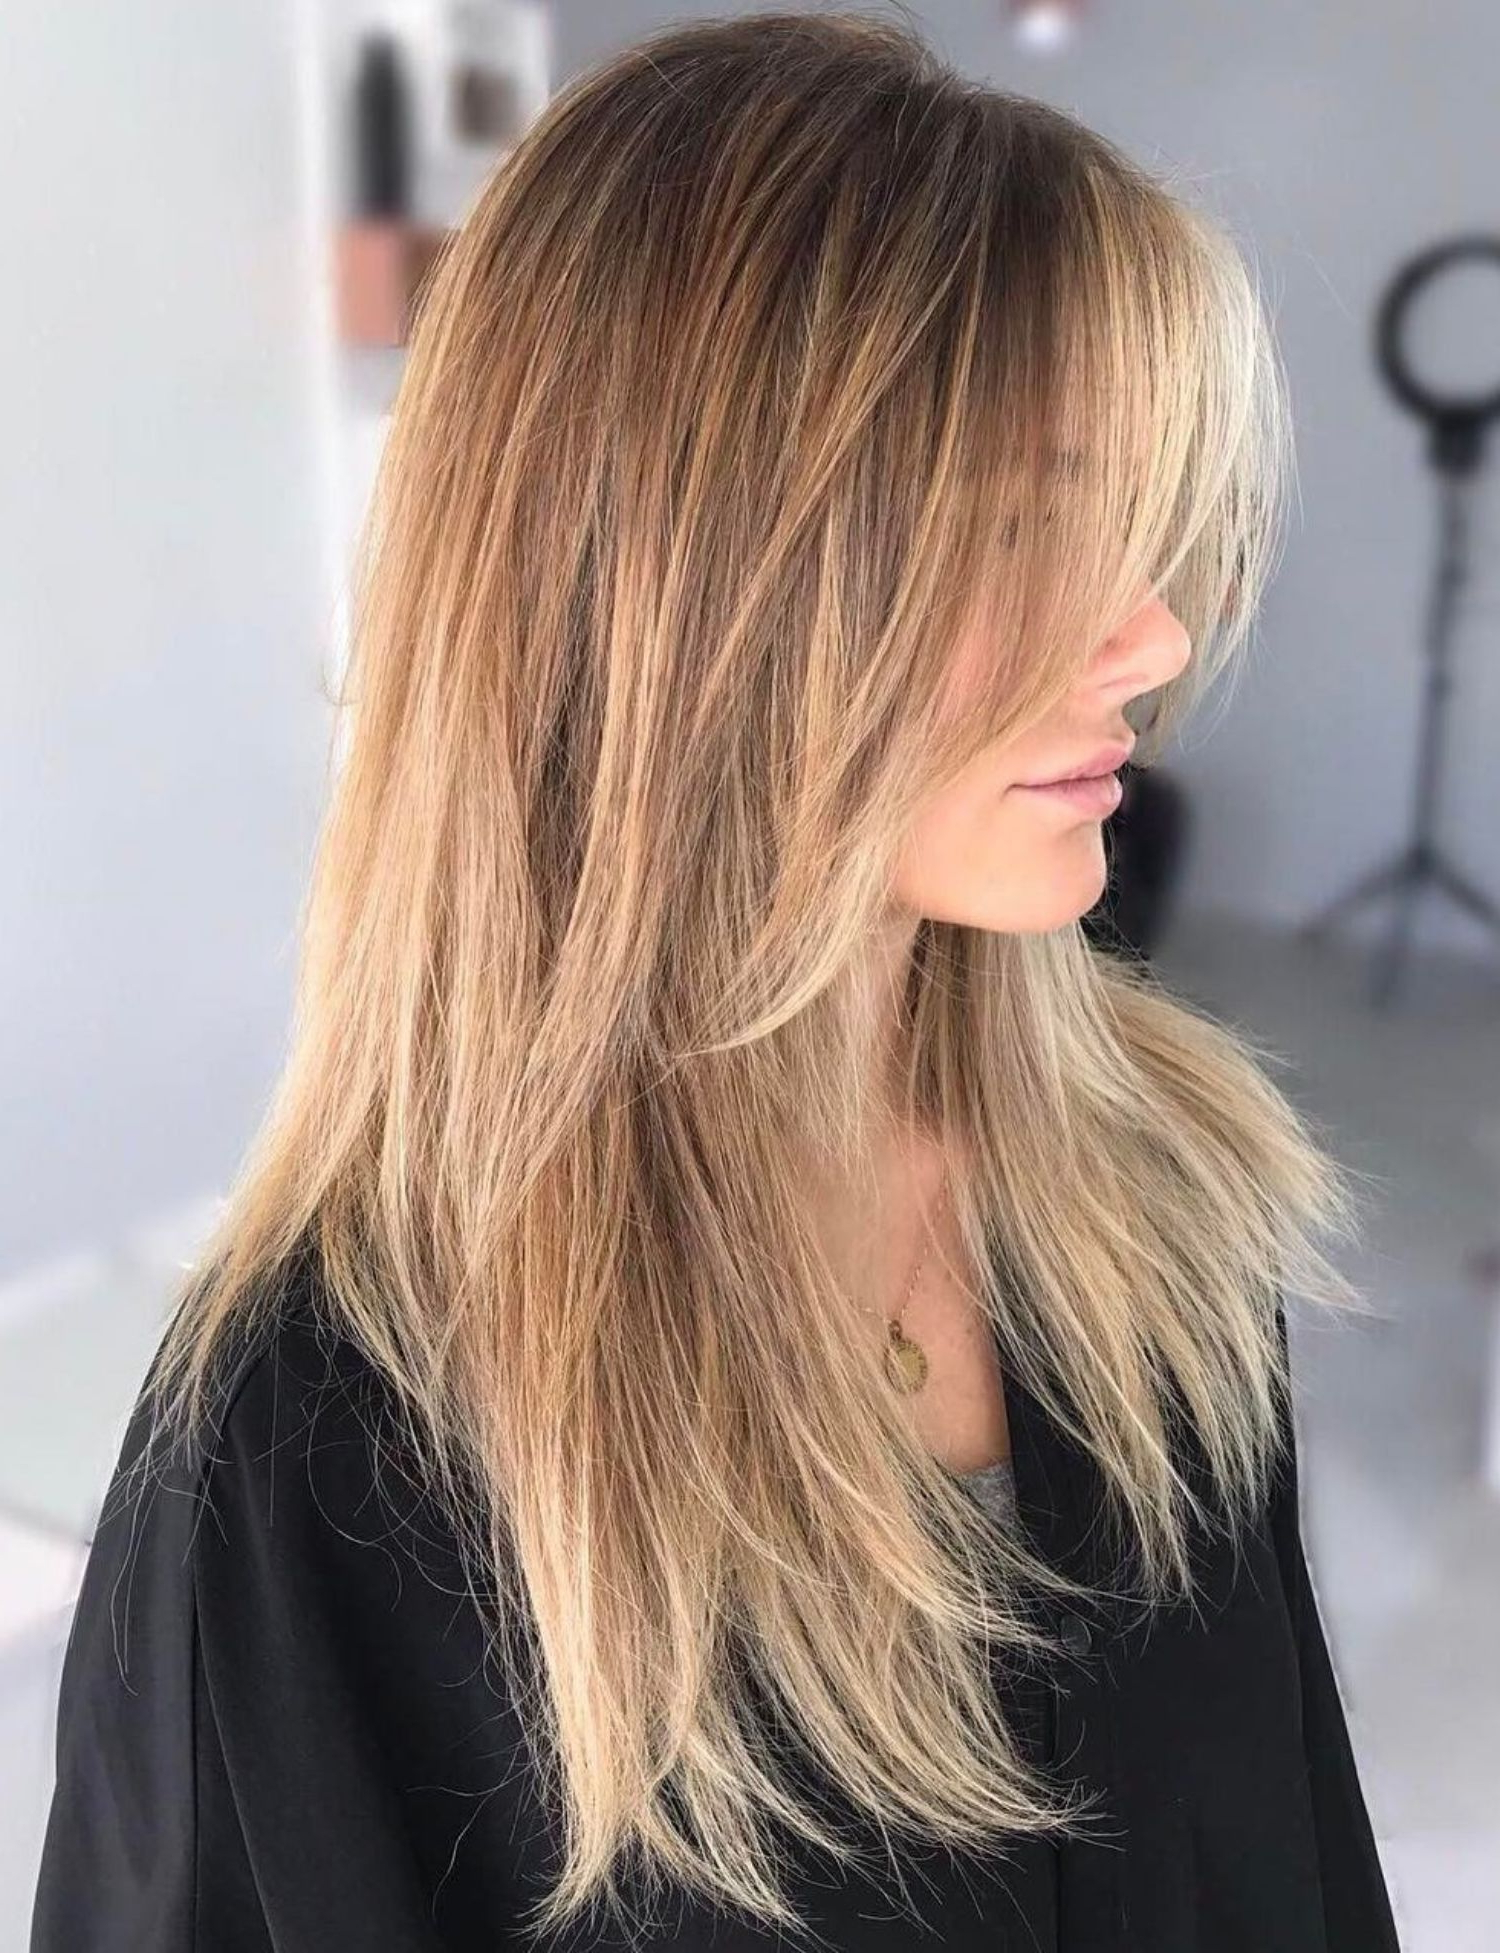 Best And Newest Long Layer Shagged Hairstyles With 60 Lovely Long Shag Haircuts For Effortless Stylish Looks In (Gallery 3 of 20)